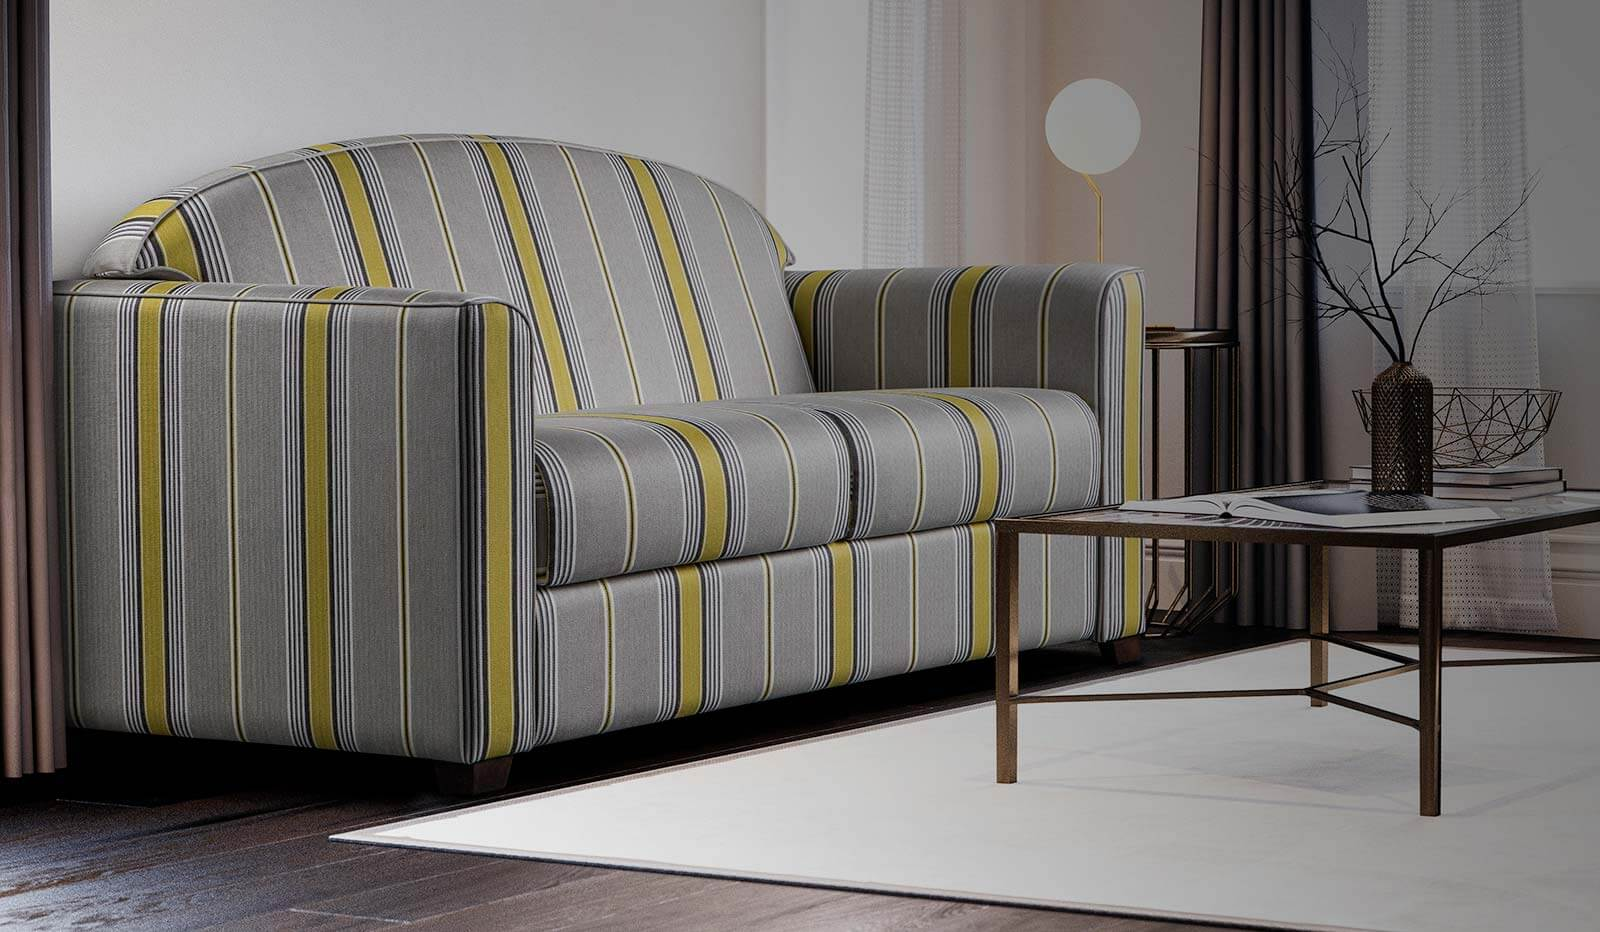 made to measure sofa beds uk black table with shelves for everyday use archives furl blog lets talk